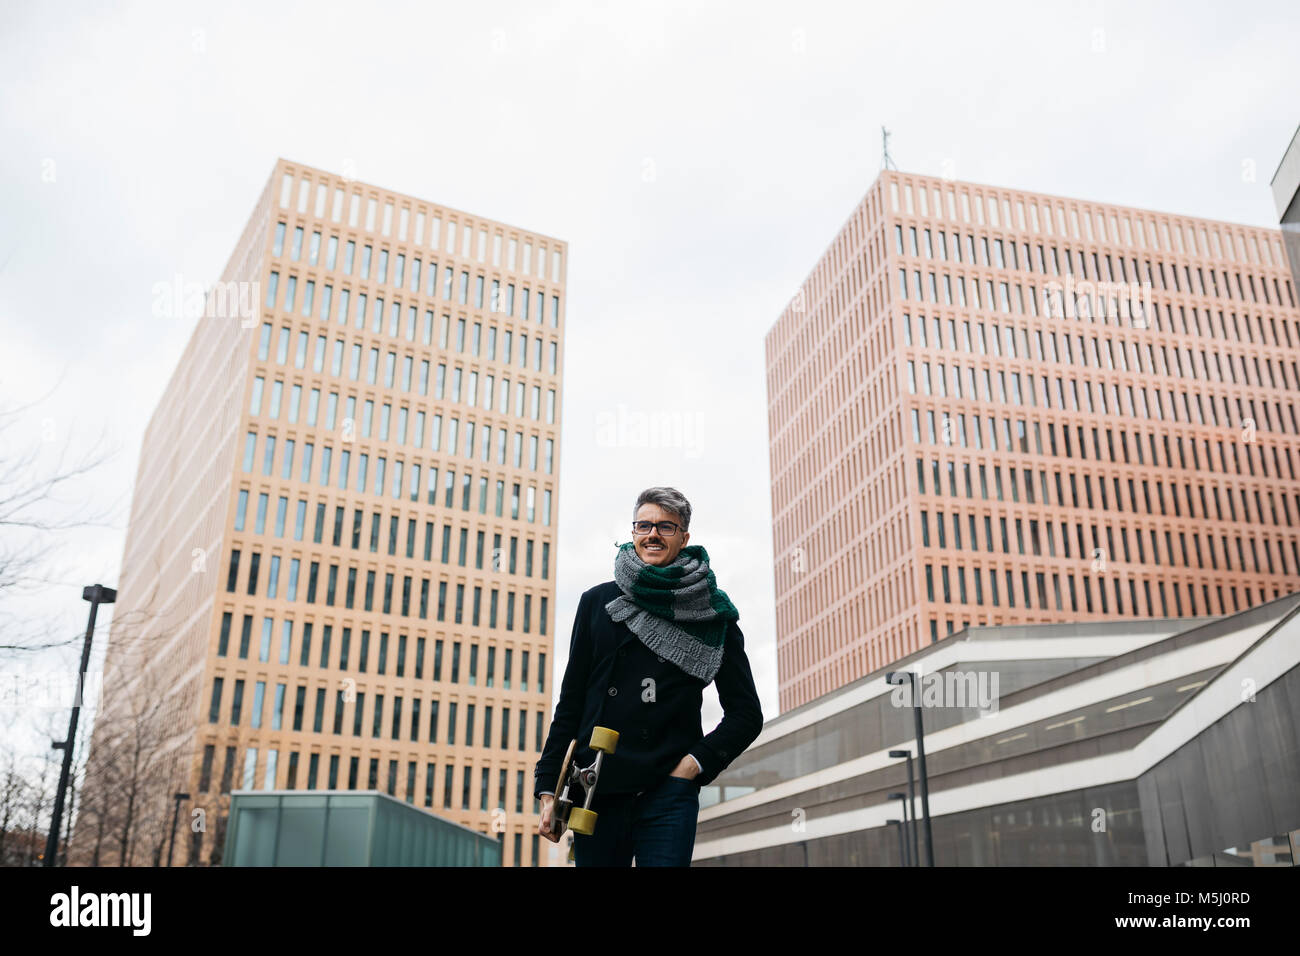 Smiling businessman walking through the city with a longboard - Stock Image